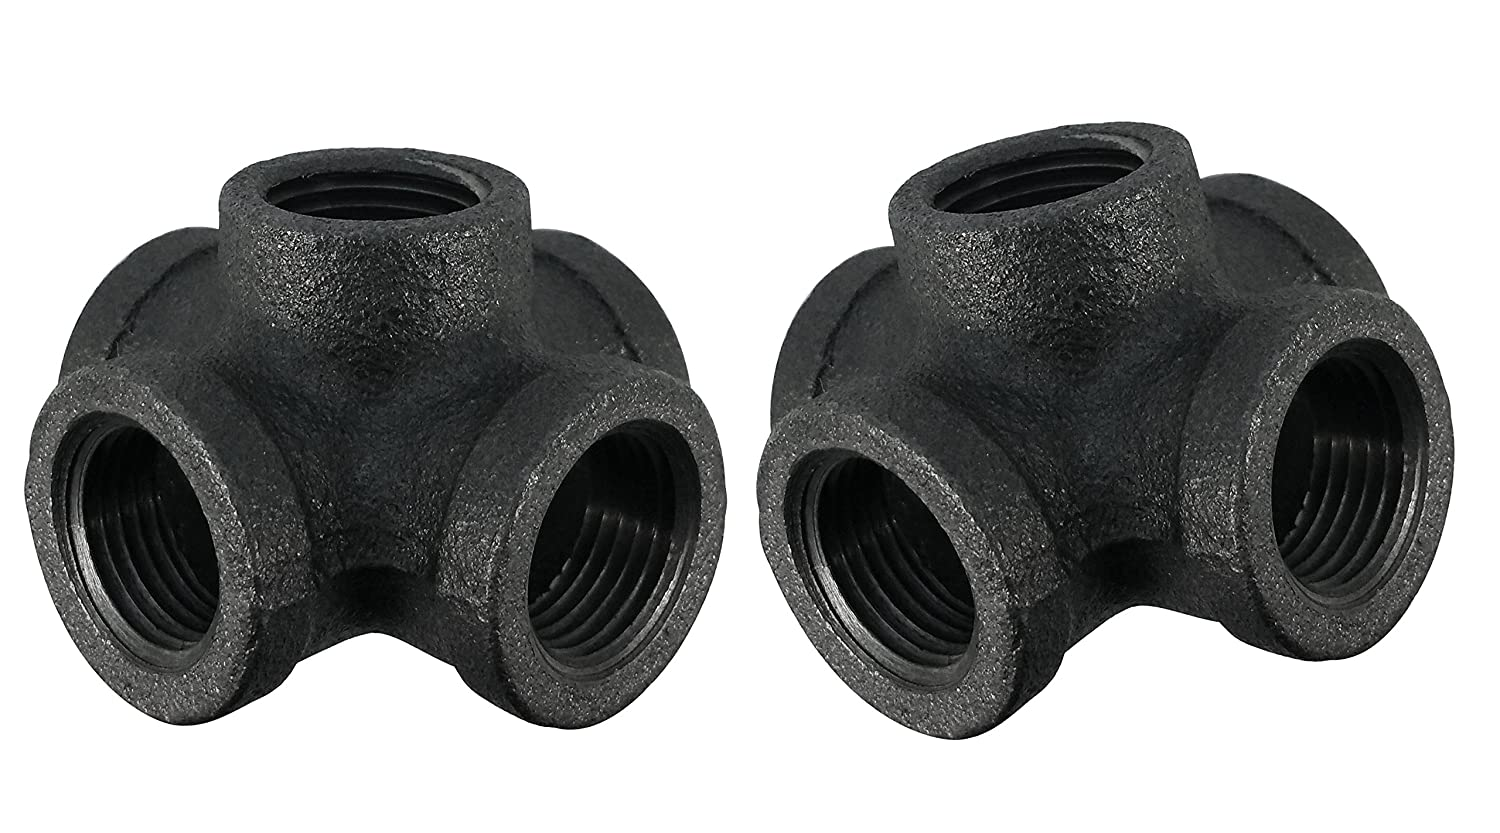 1/2 Inch Side Outlet Pipe Cross, 5 Way Fitting by Pipe Décor, Industrial Steel Grey, Build Tables, Chairs, Shelving and Custom Furniture, Fits Standard Half Inch Black Pipes and Nipples, 2 Pack